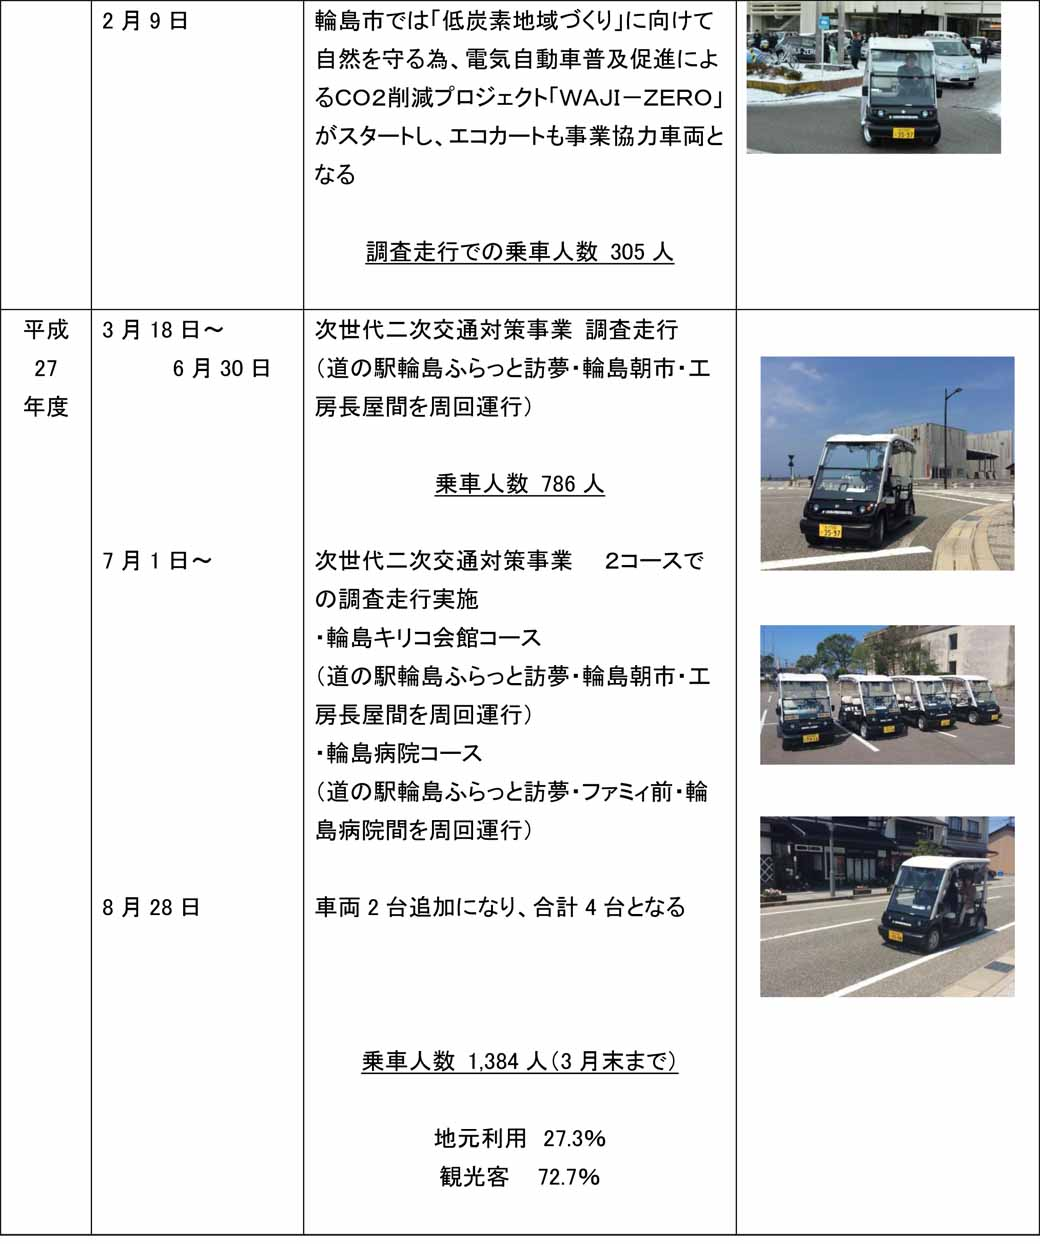 run-ishikawa-prefecture-wajima-local-revitalization-measures-by-the-eco-cart-is-good-eventually-also-view-automatic-operation20160708-5